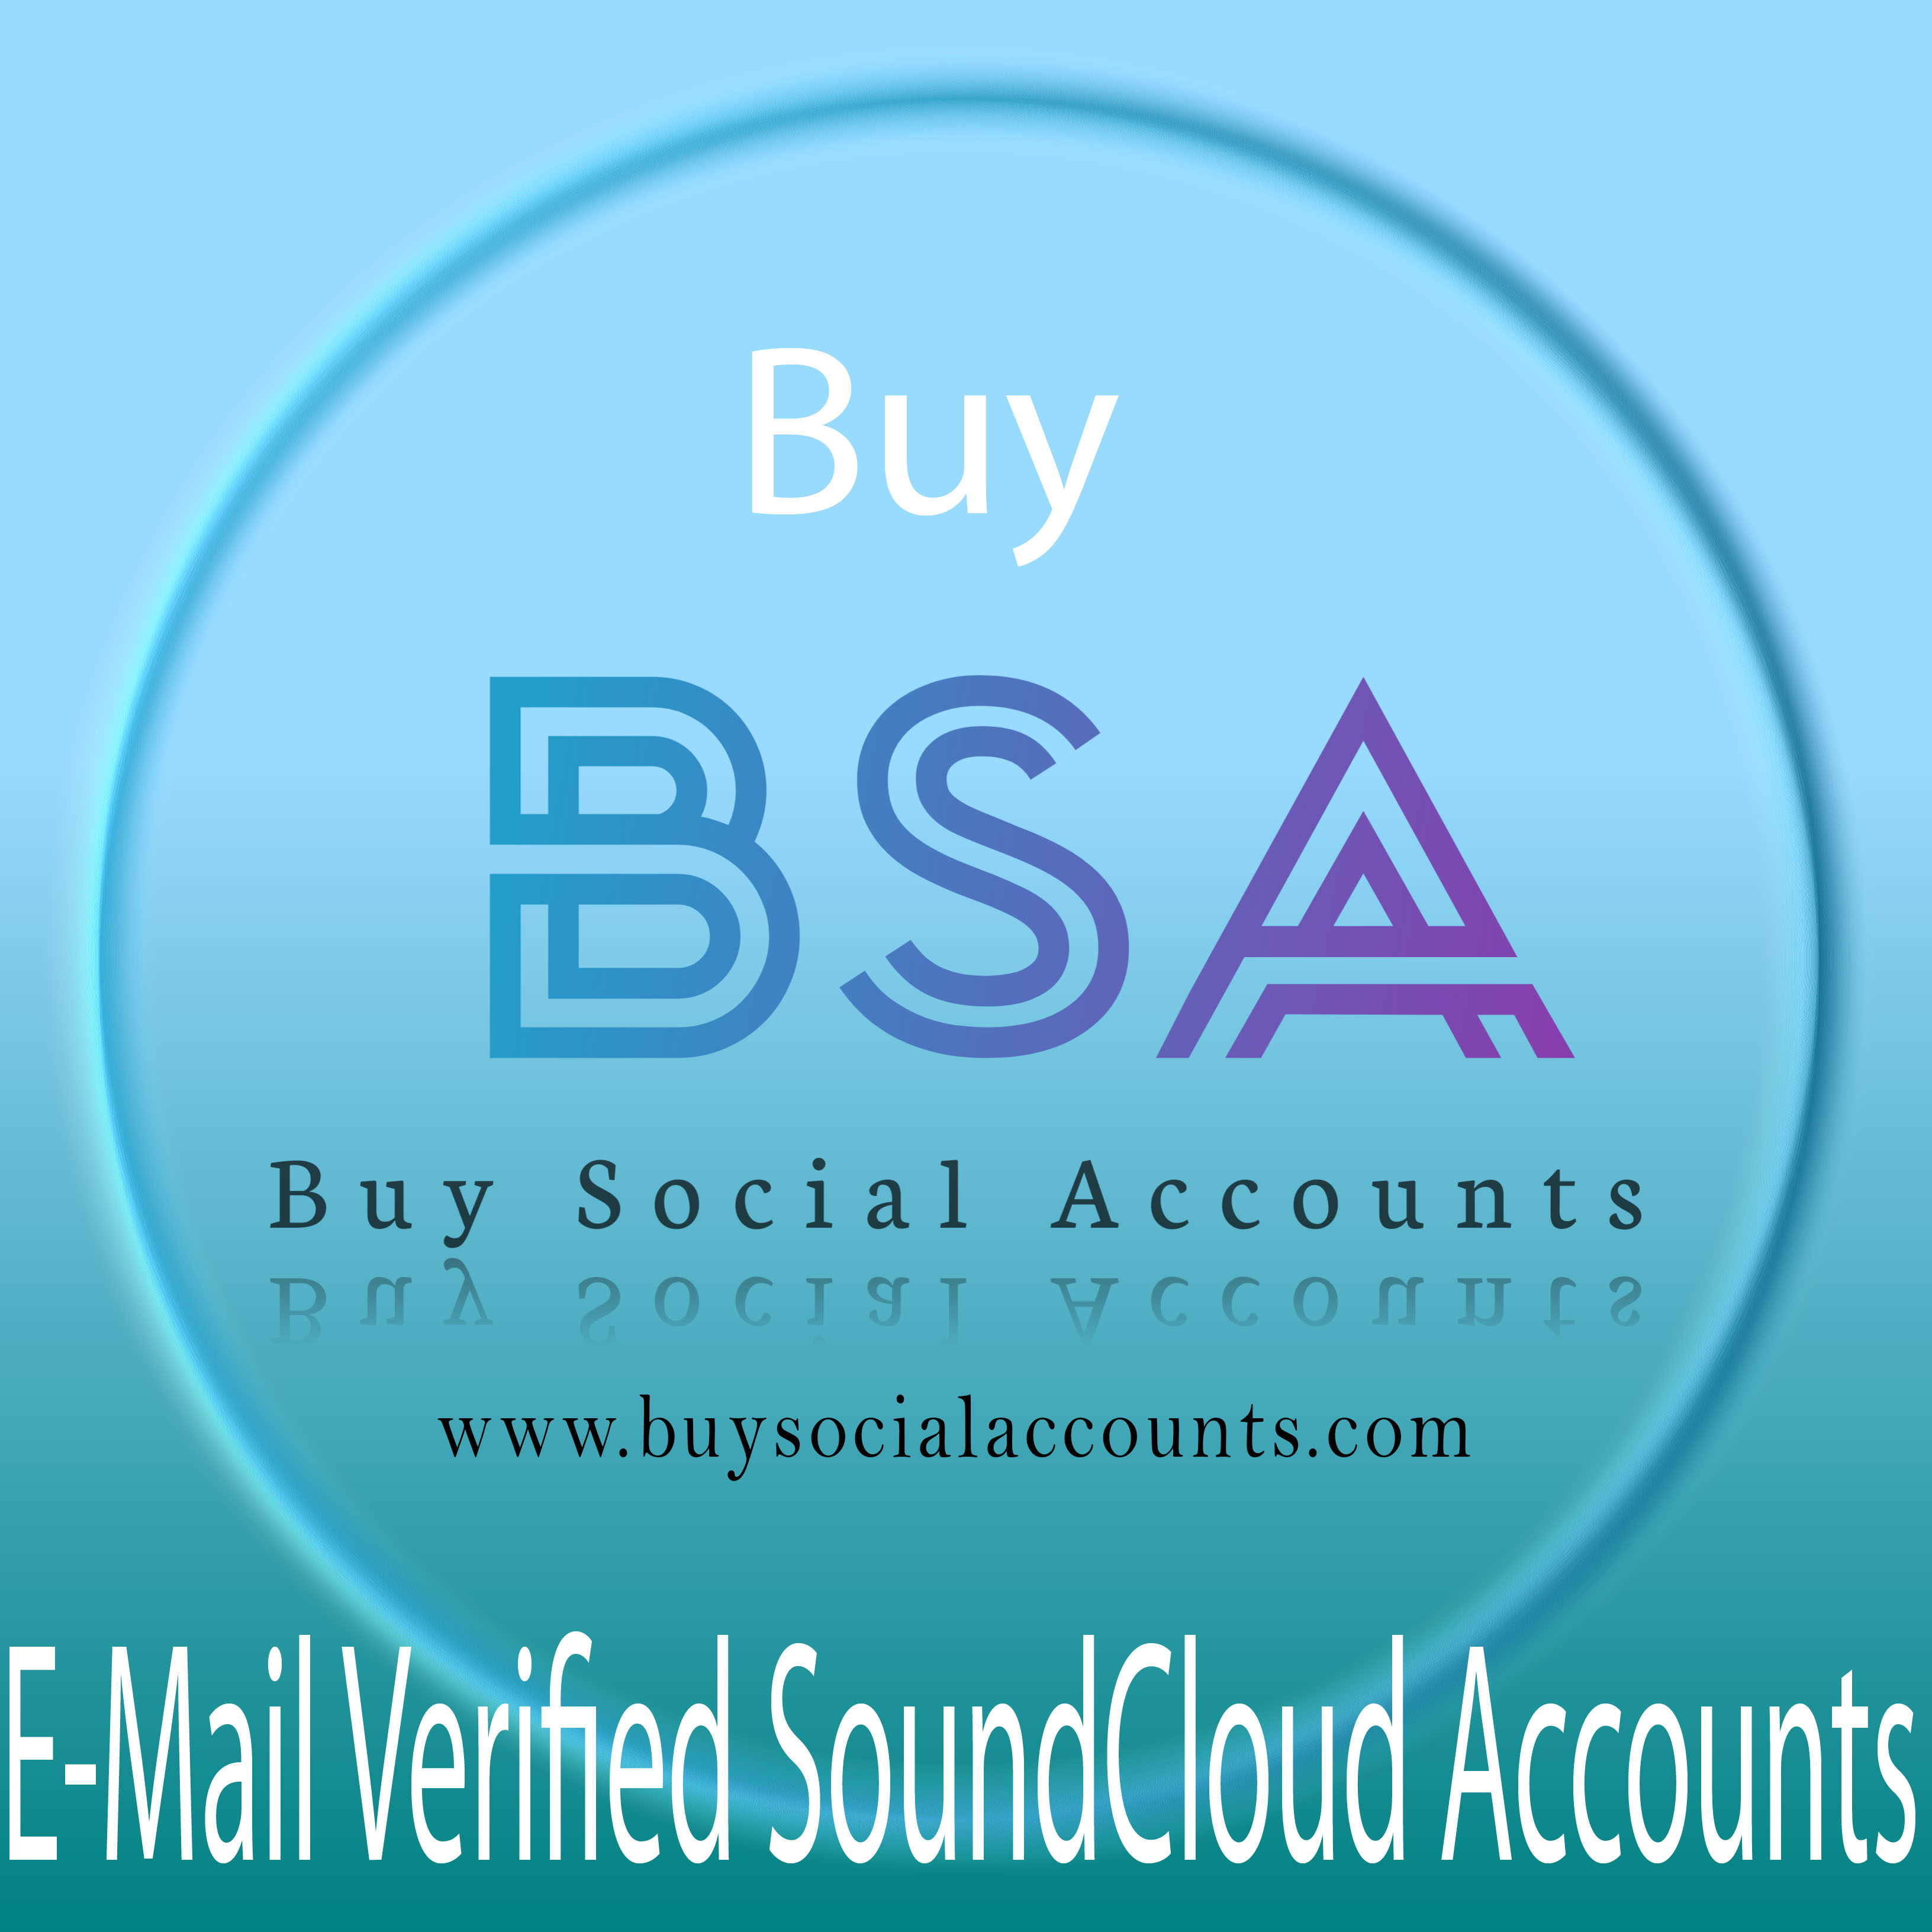 Buy Email Verified SoundCloud Accounts - NoBody Can Give Better